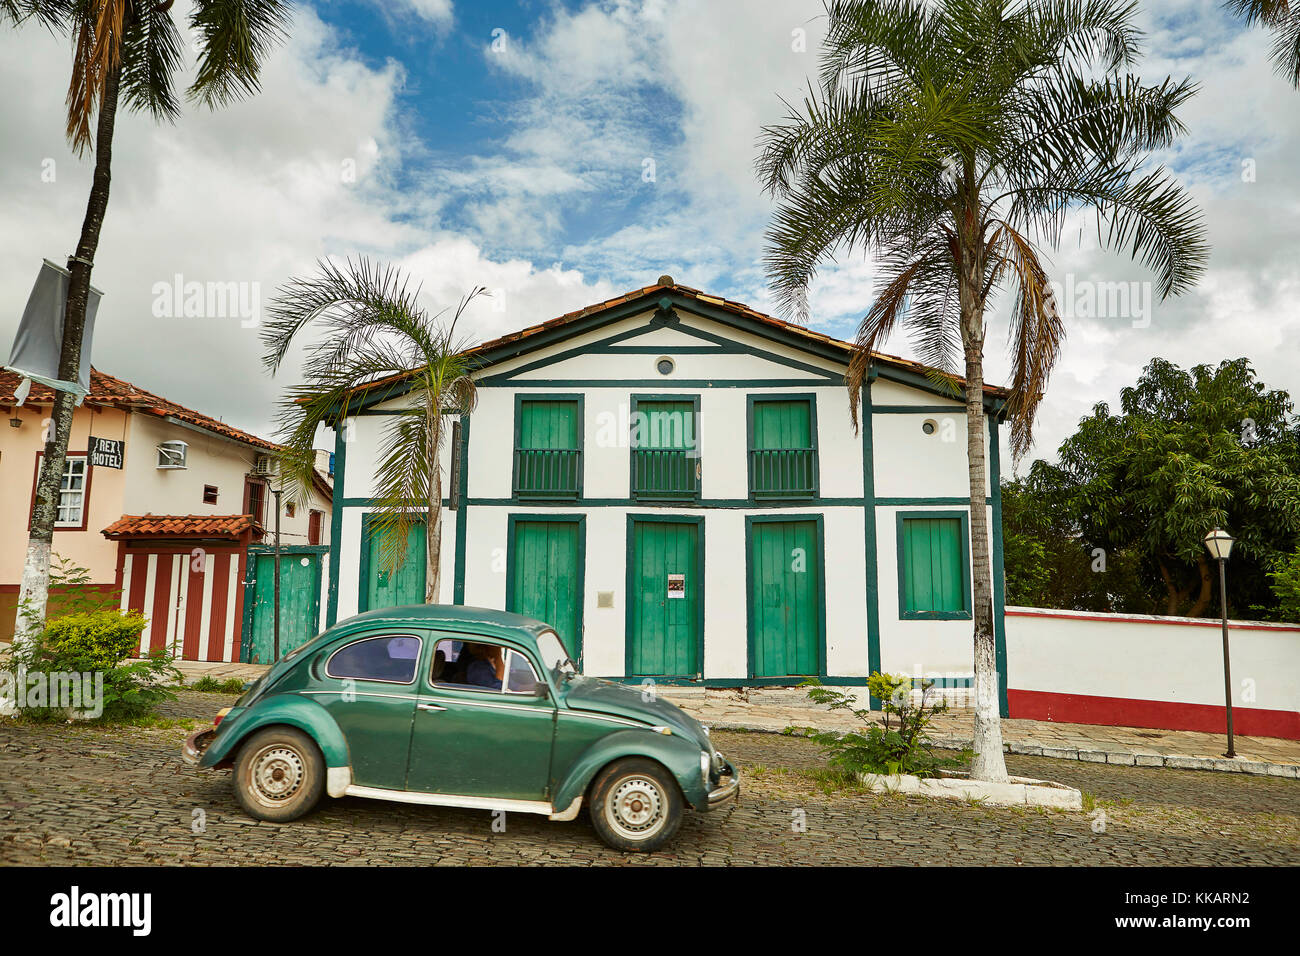 Colonial architecture in the old town with iconic VW Beetle car, Pirenopolis, Goias state, Brazil, South America - Stock Image